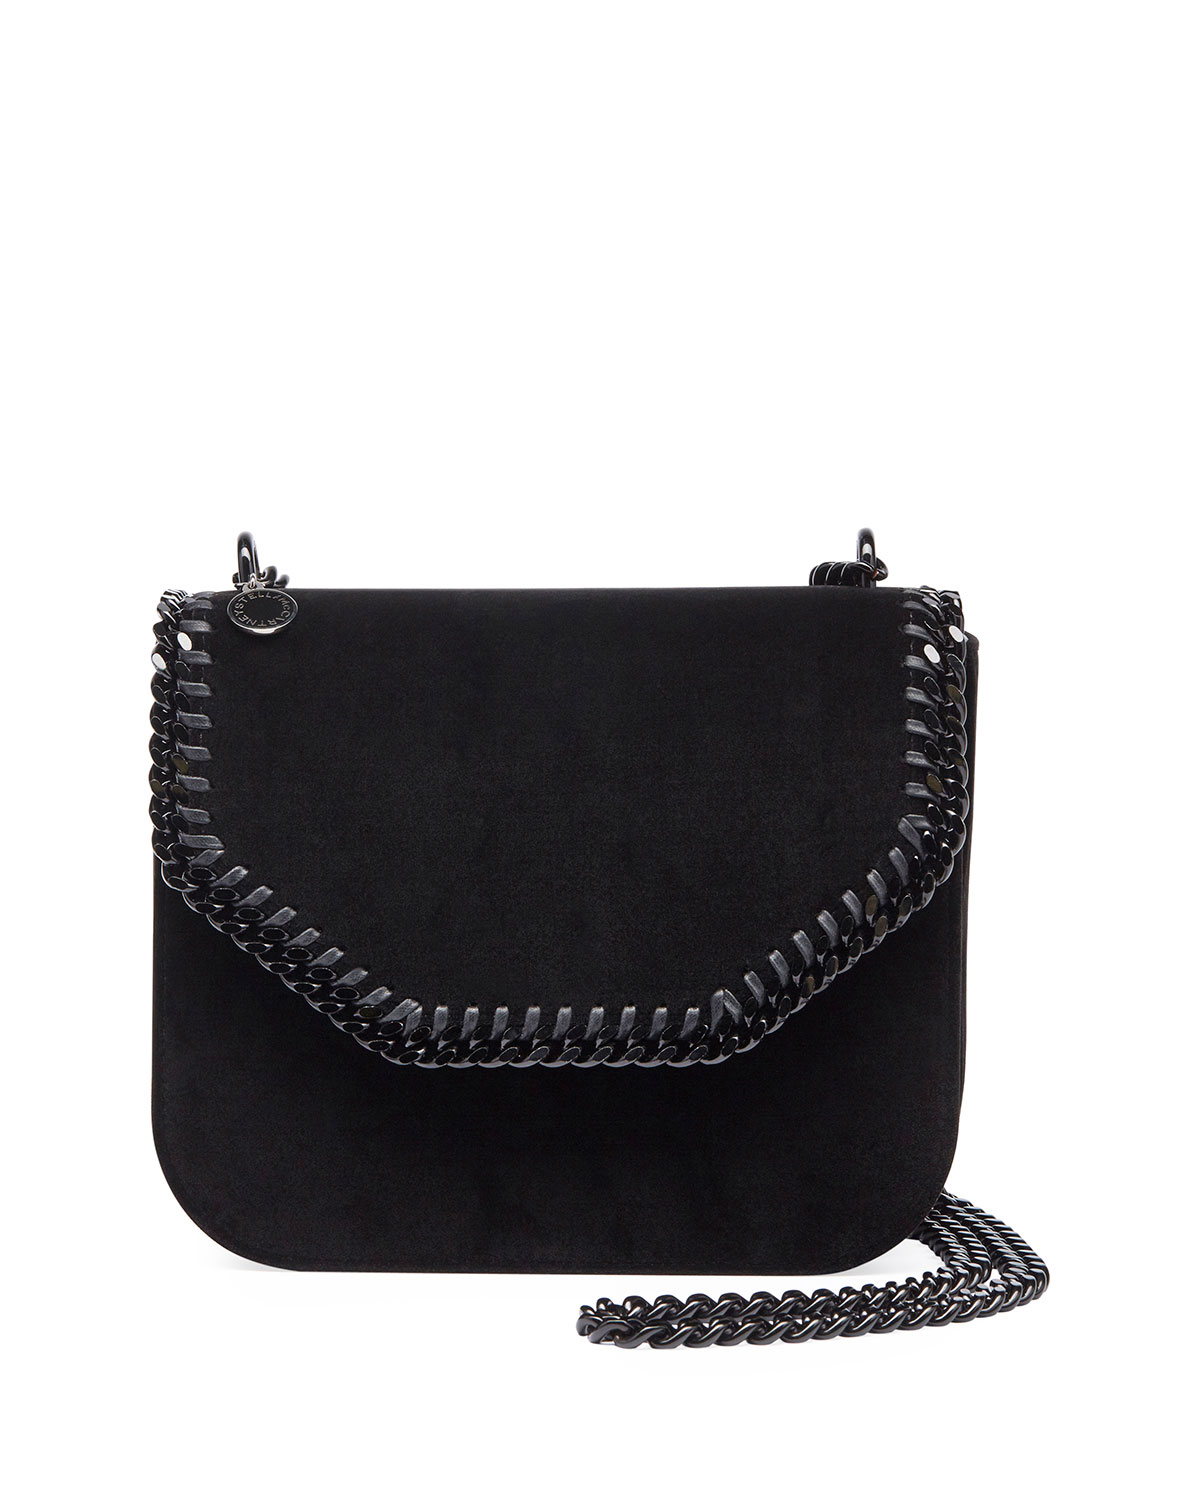 Stella McCartney Falabella Velvet Box Crossbody Bag, Black   Neiman ... f5a5ad3b32